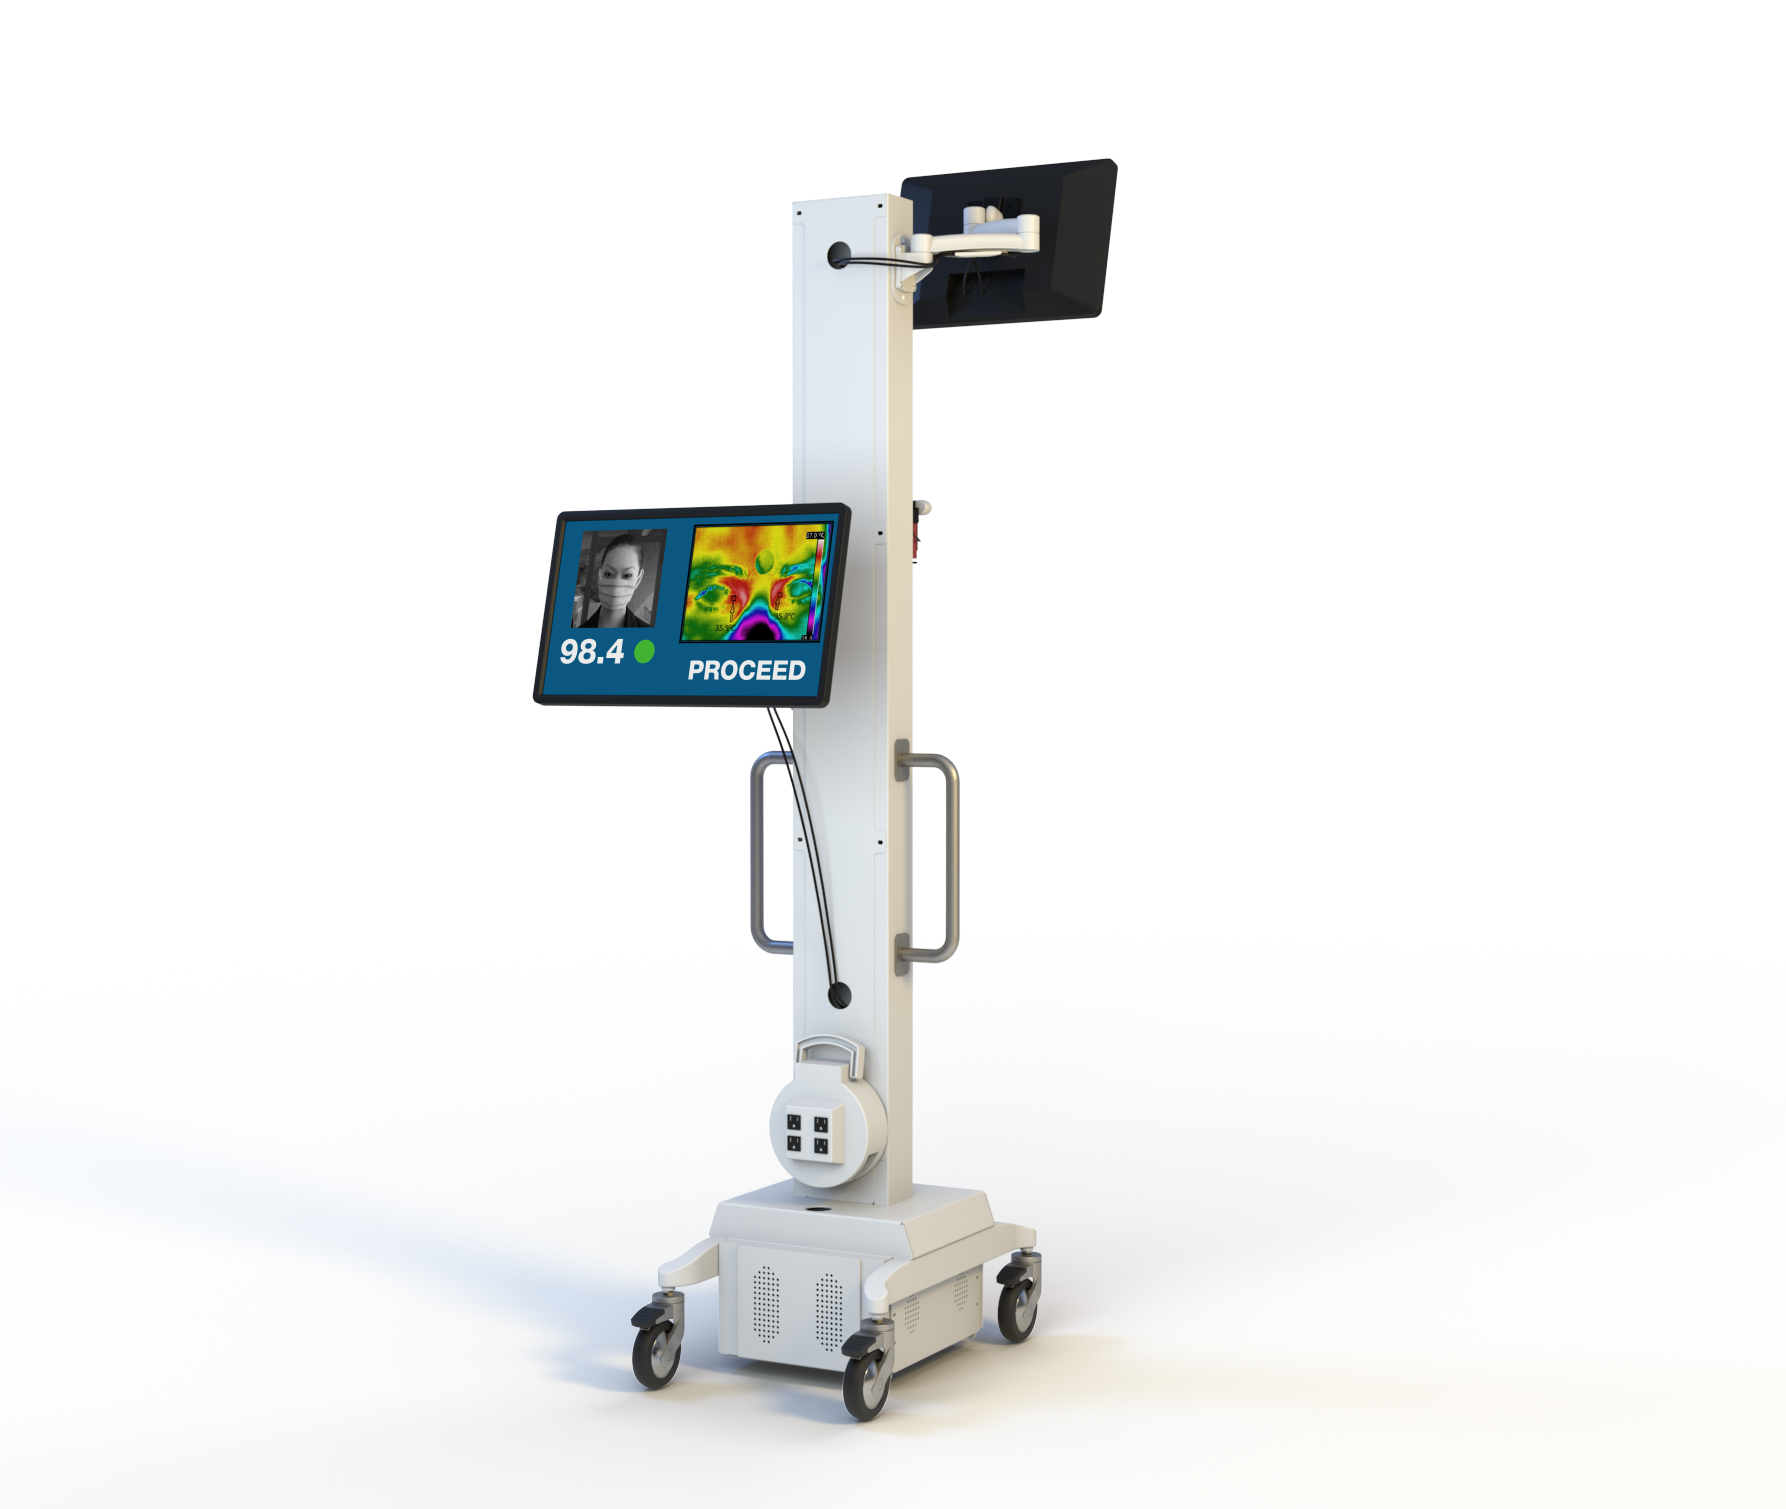 integrated thermal camera on portable cart